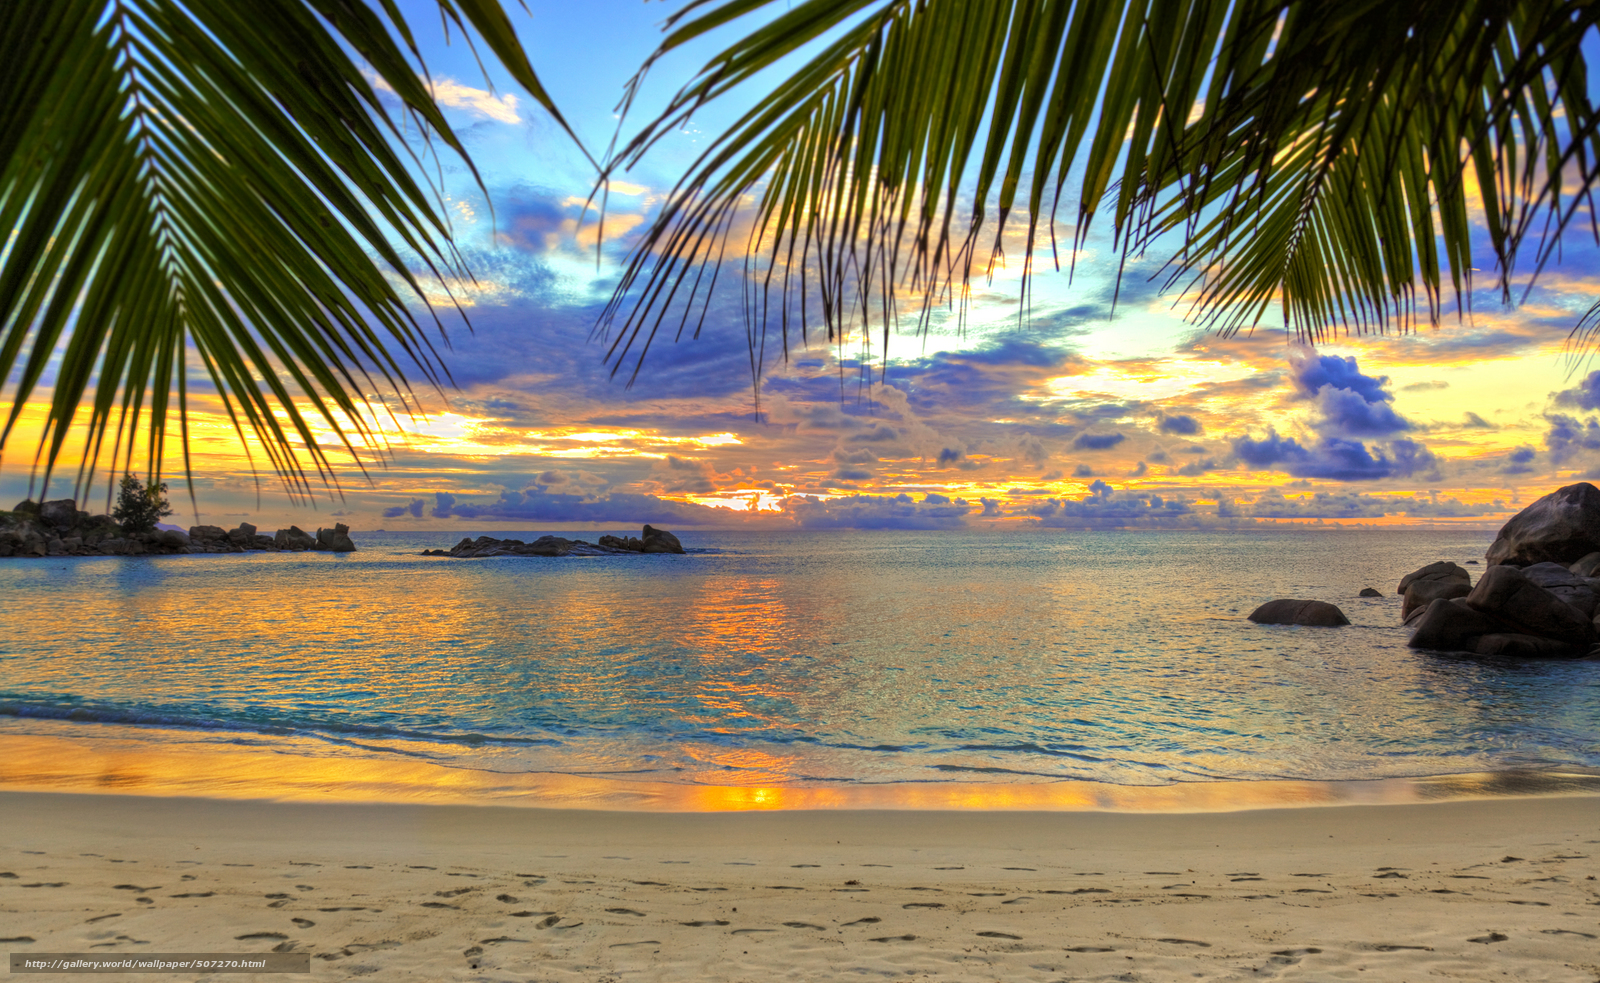 Beautiful beaches in the world at sunset